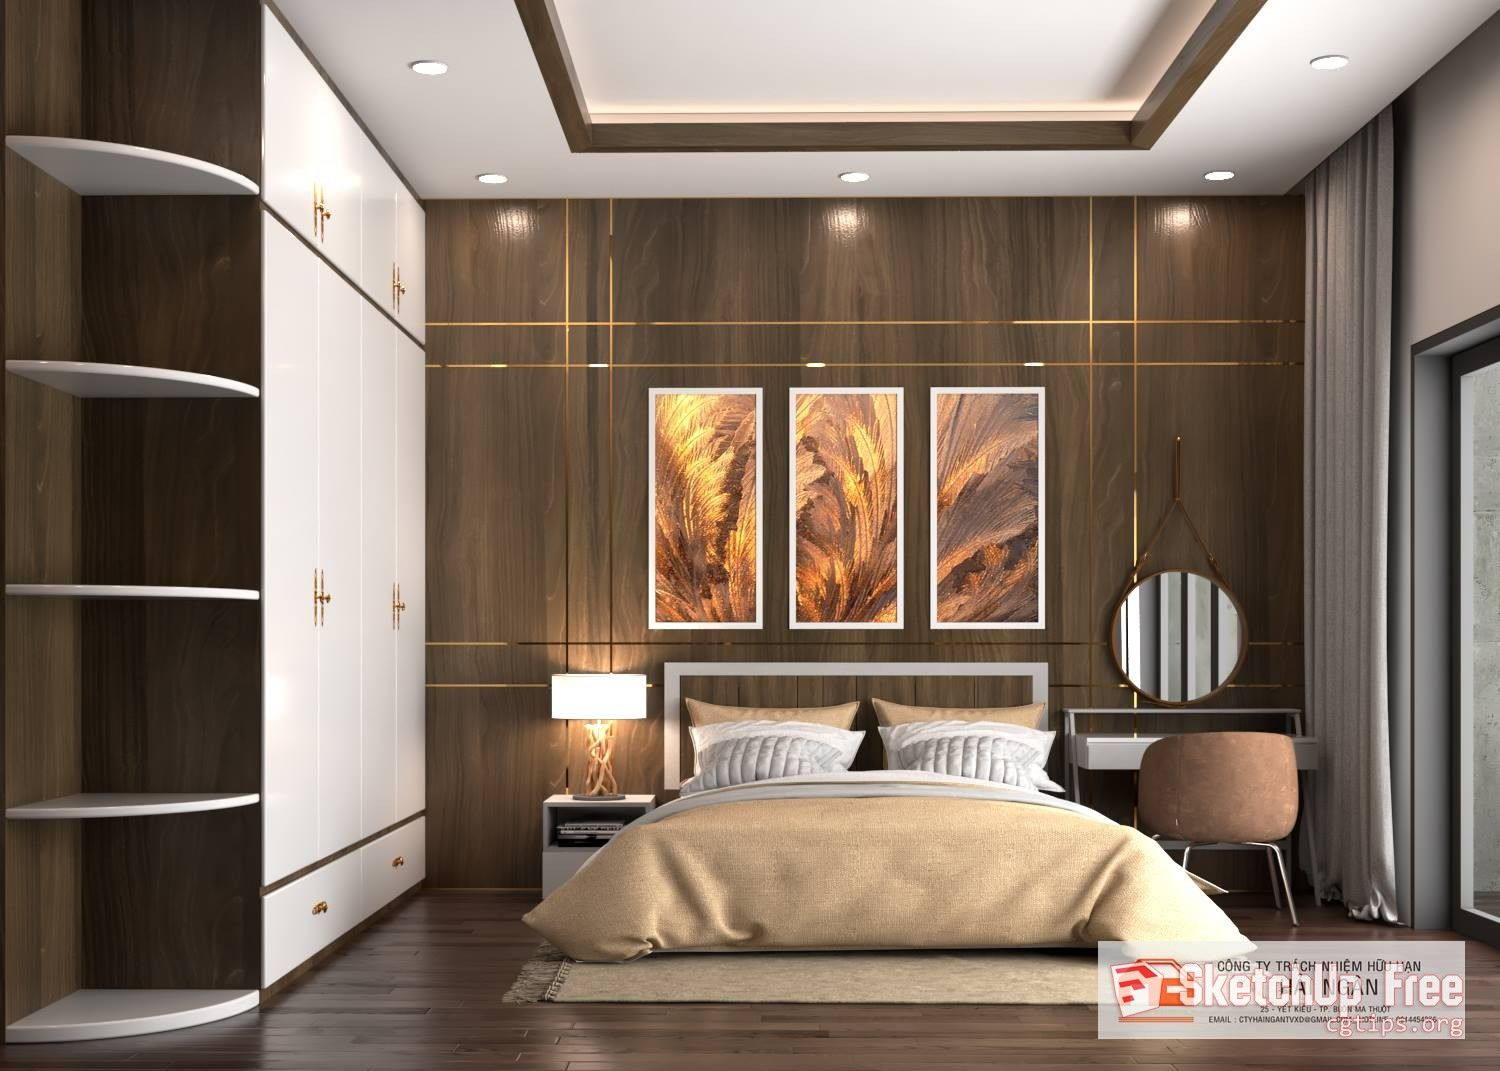 1721 Interior Bedroom Sketchup Model Free Download Bedroom